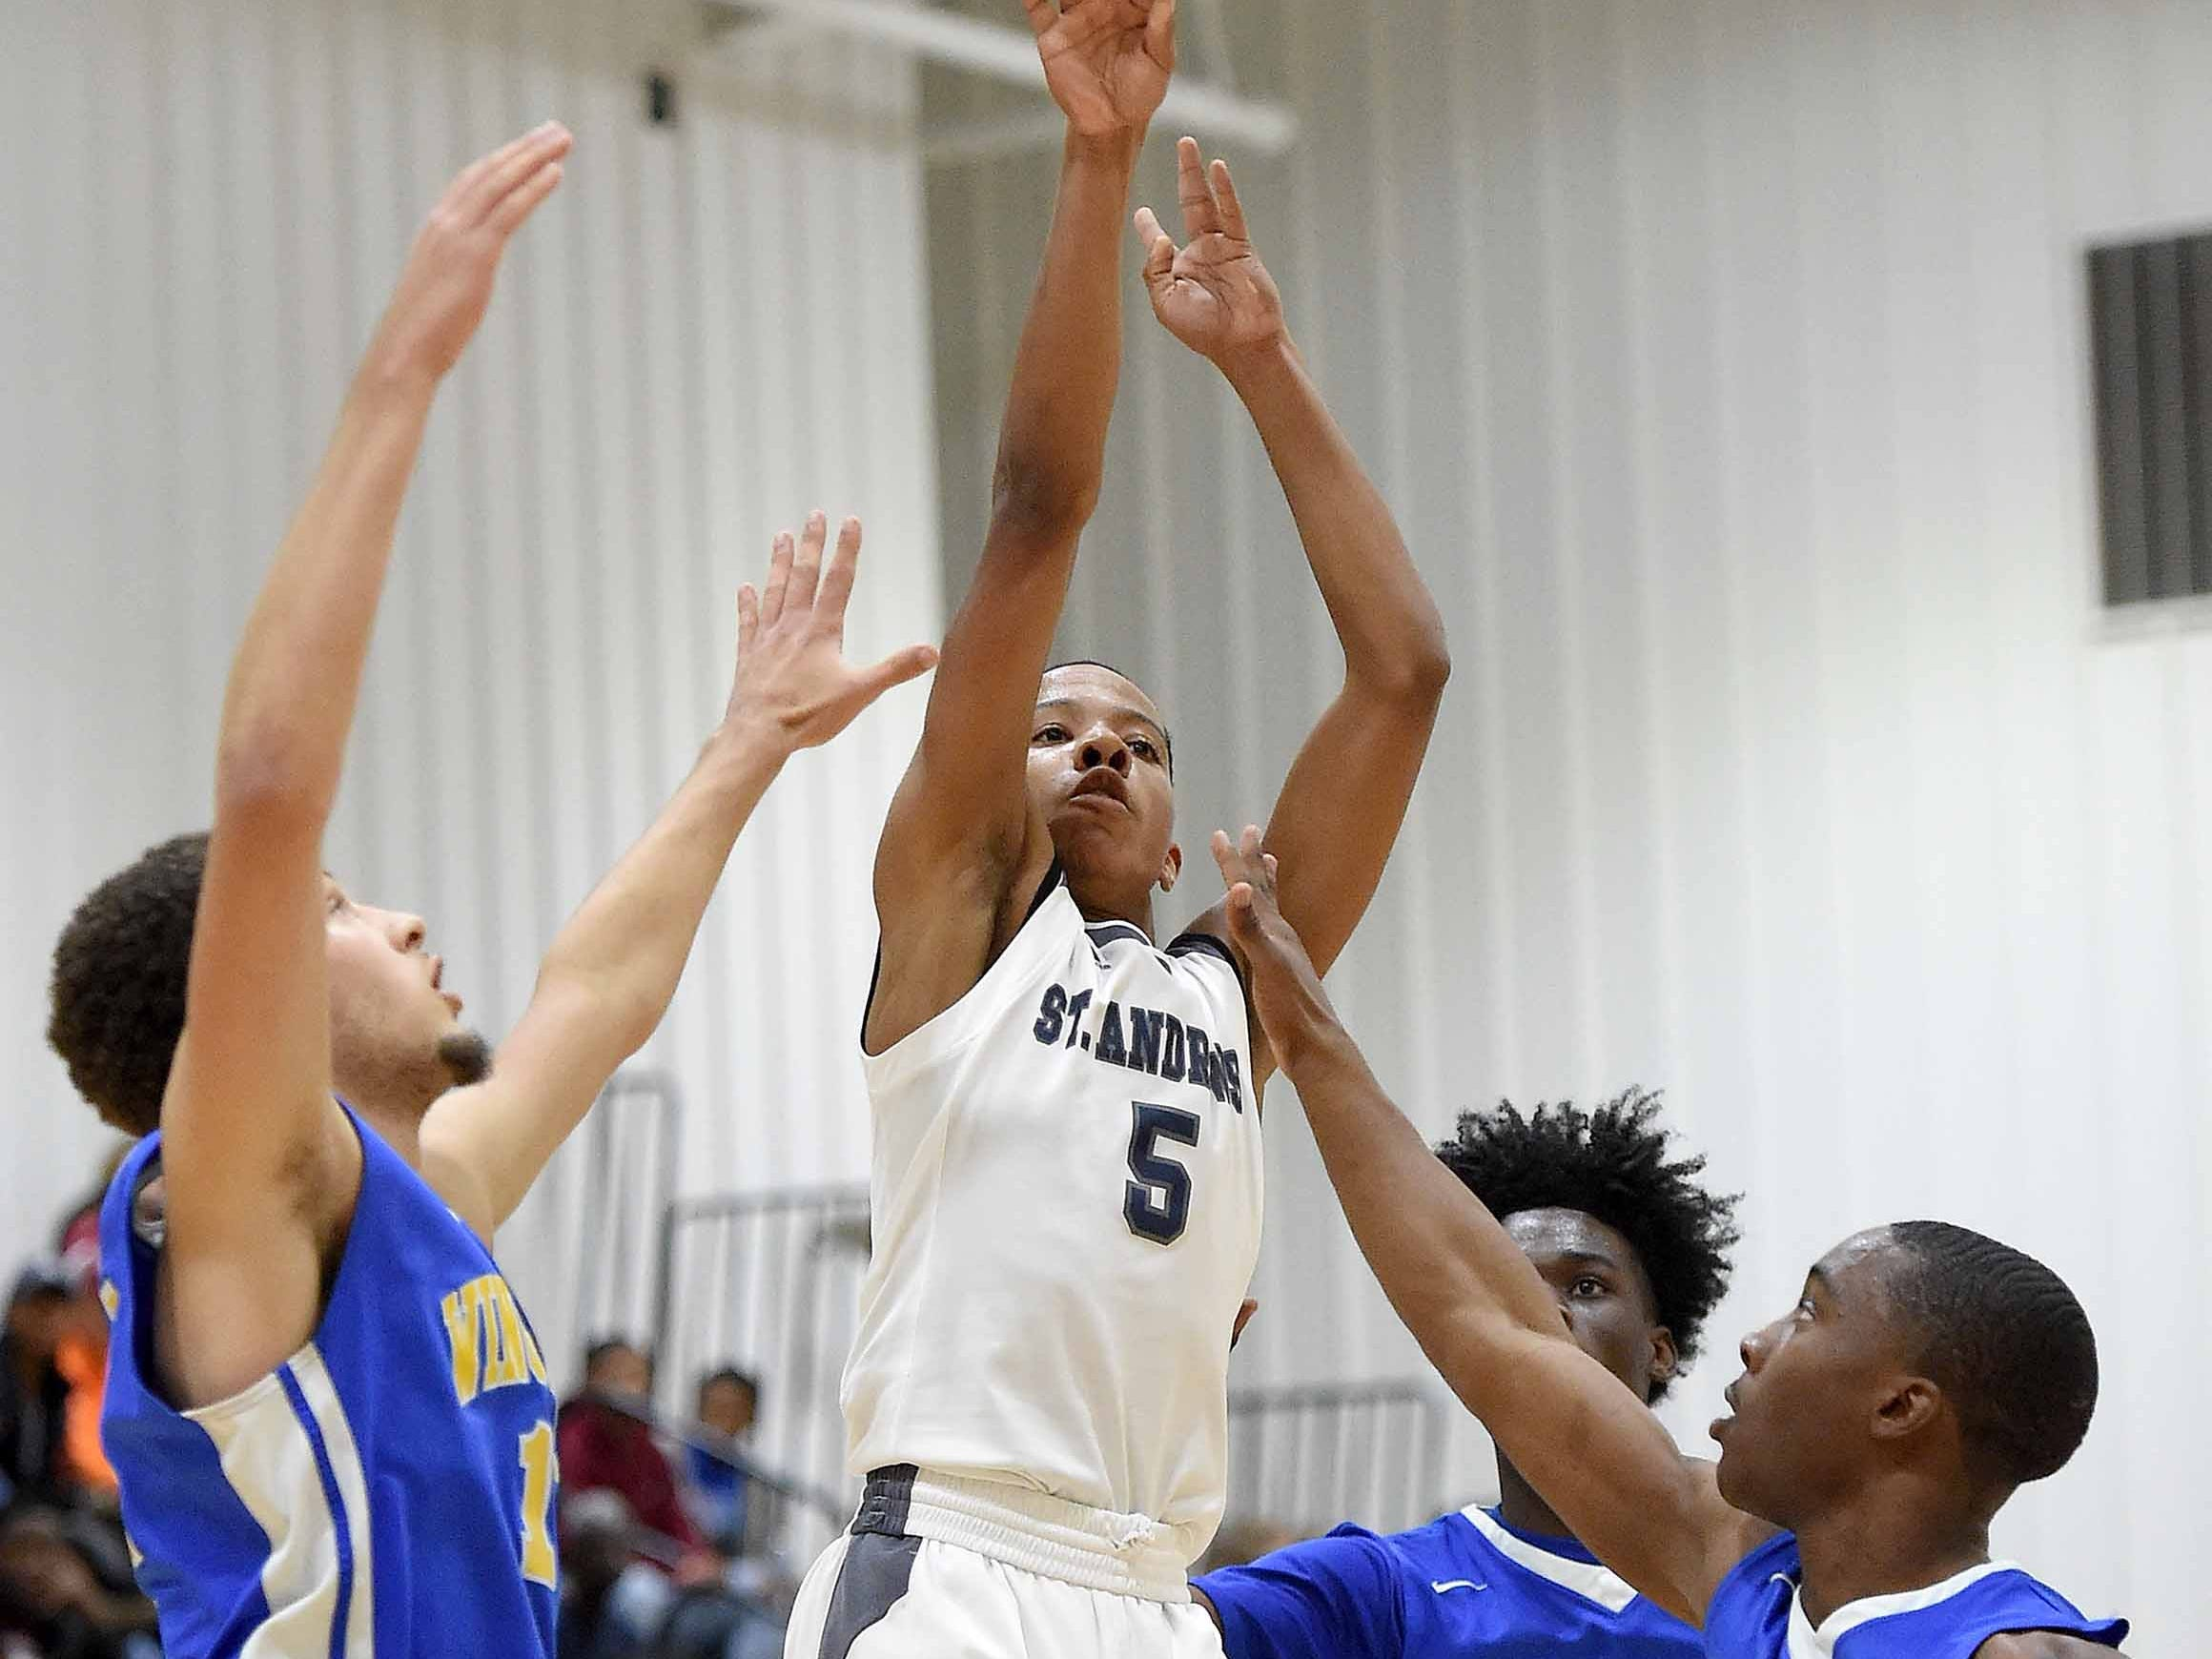 St. Andrew's Rashad Bolden (5) shoots in the middle of a trio of Wingfield defenders on Monday, January 21, 2019, at the Rumble in the South high school basketball tournament at St. Andrew's Episcopal School in Ridgeland, Miss.